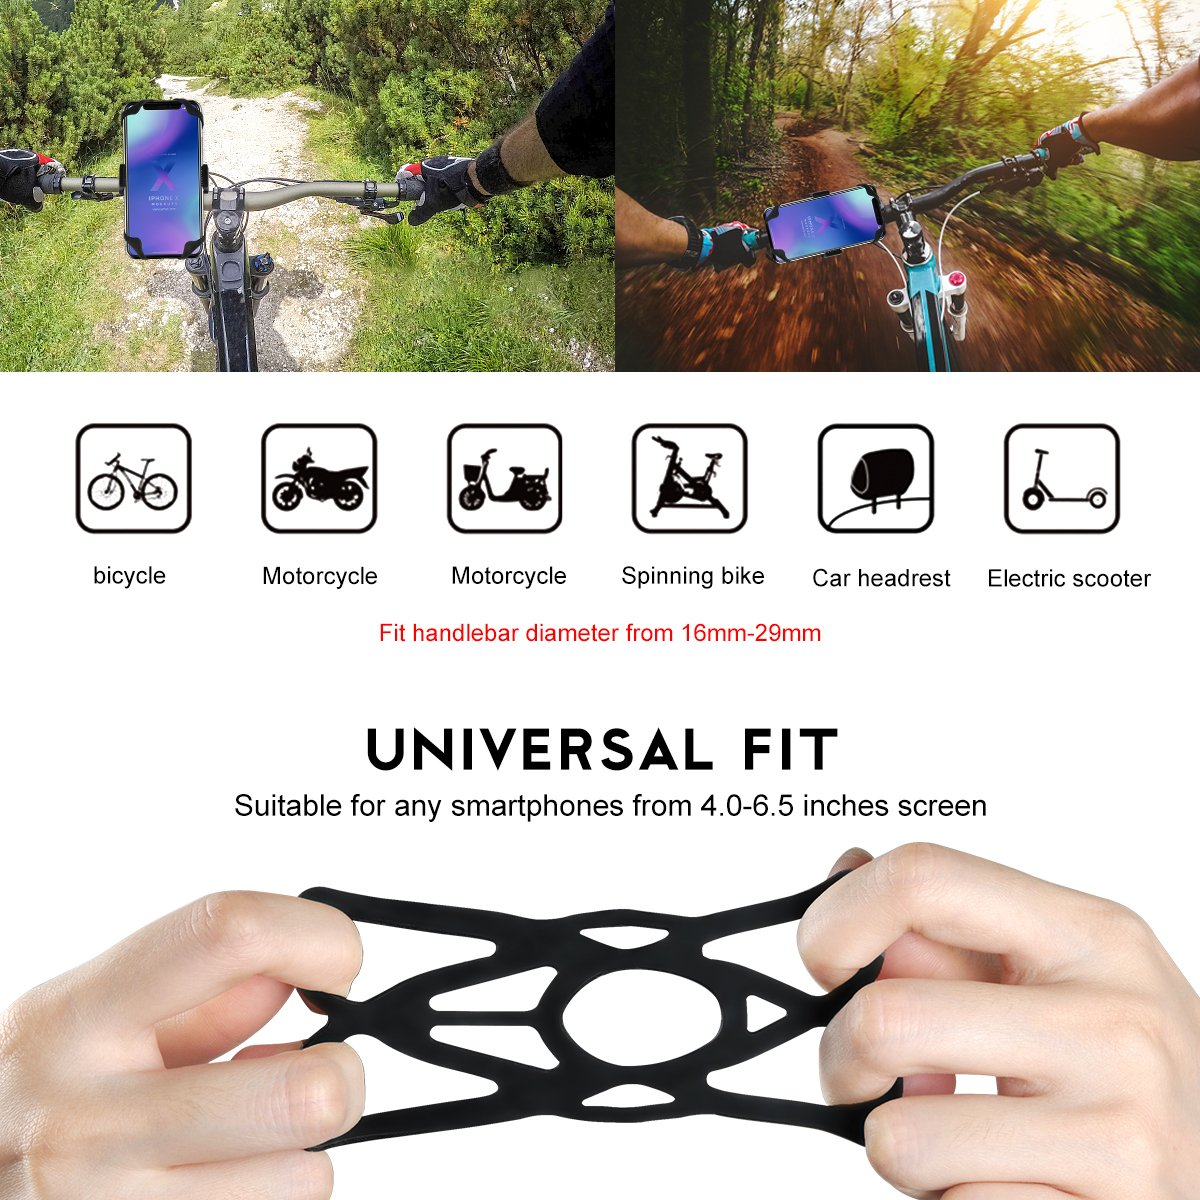 Black Bicycle Phone Holder Universal Bike Phone Mount Silicone Support Band Compatible iPhone x//8//7//6 4-6.0 inches Phones Other Devices